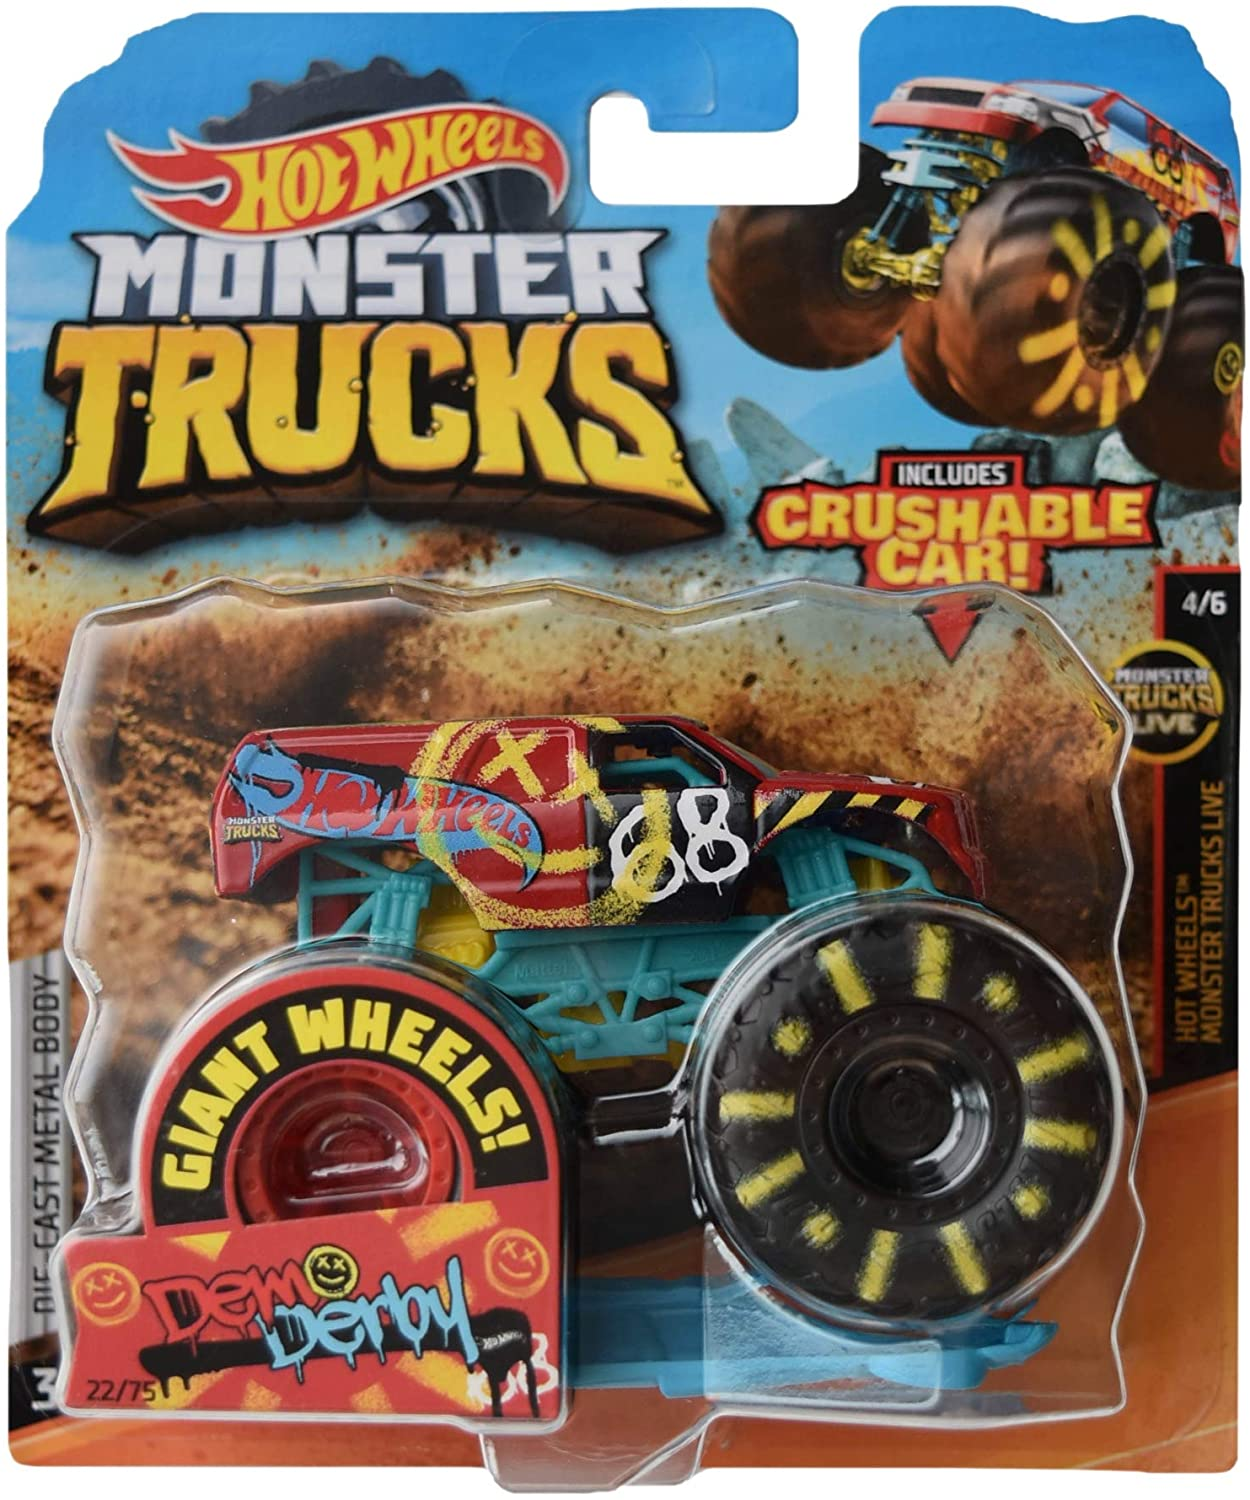 Hot Wheels Monster Trucks 1:64 Scale die cast Demo Derby 22/75 Crushable Car